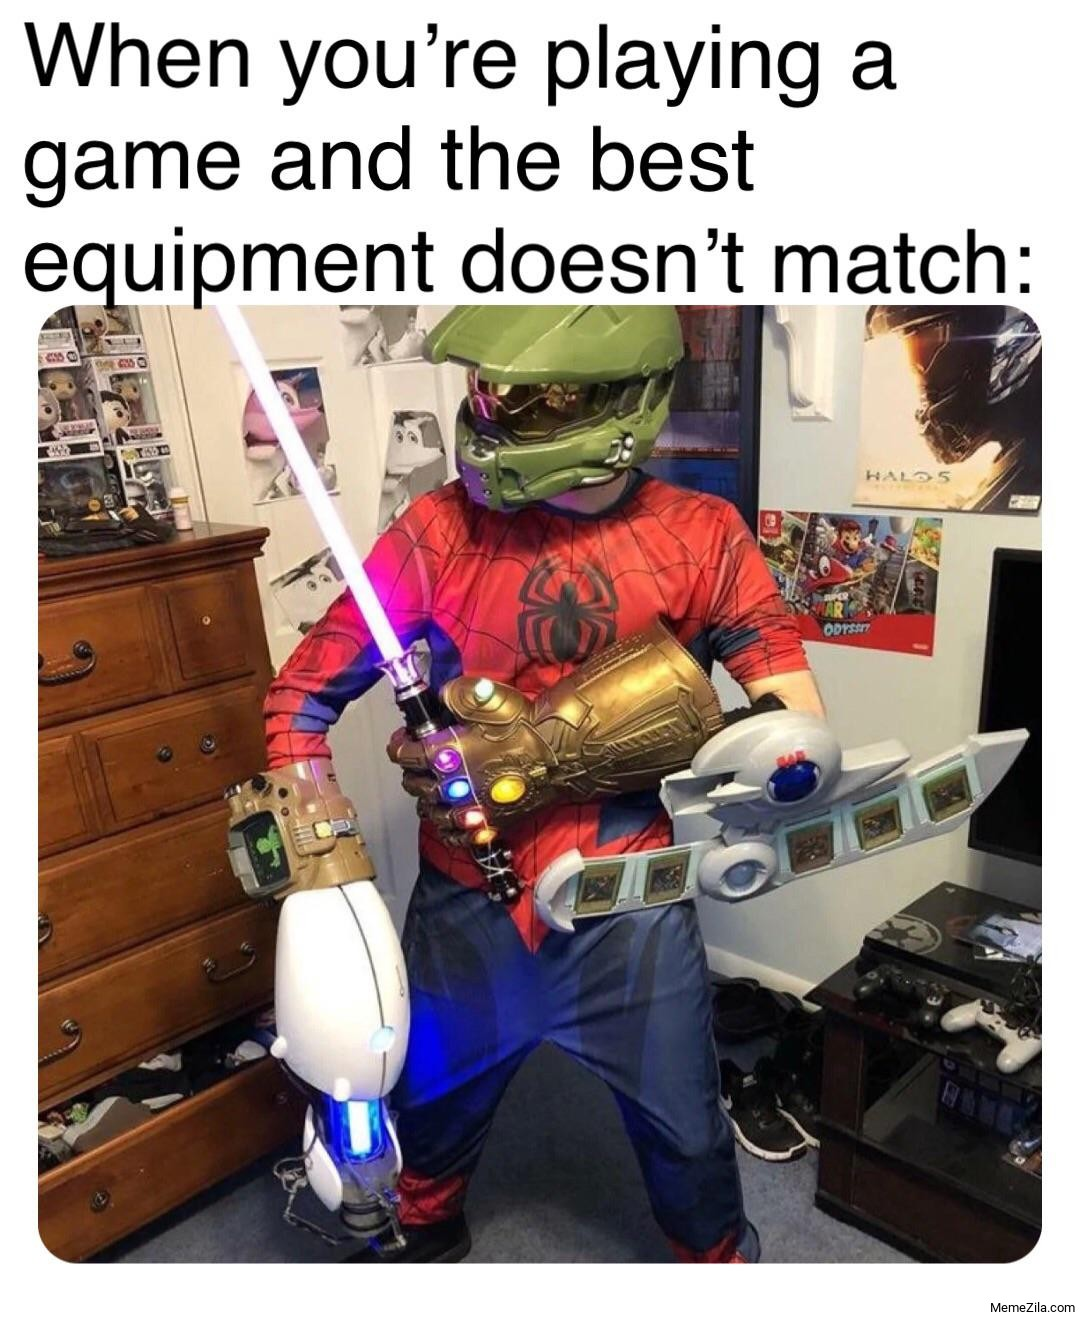 When you're playing a game and the best equipment doens't match meme